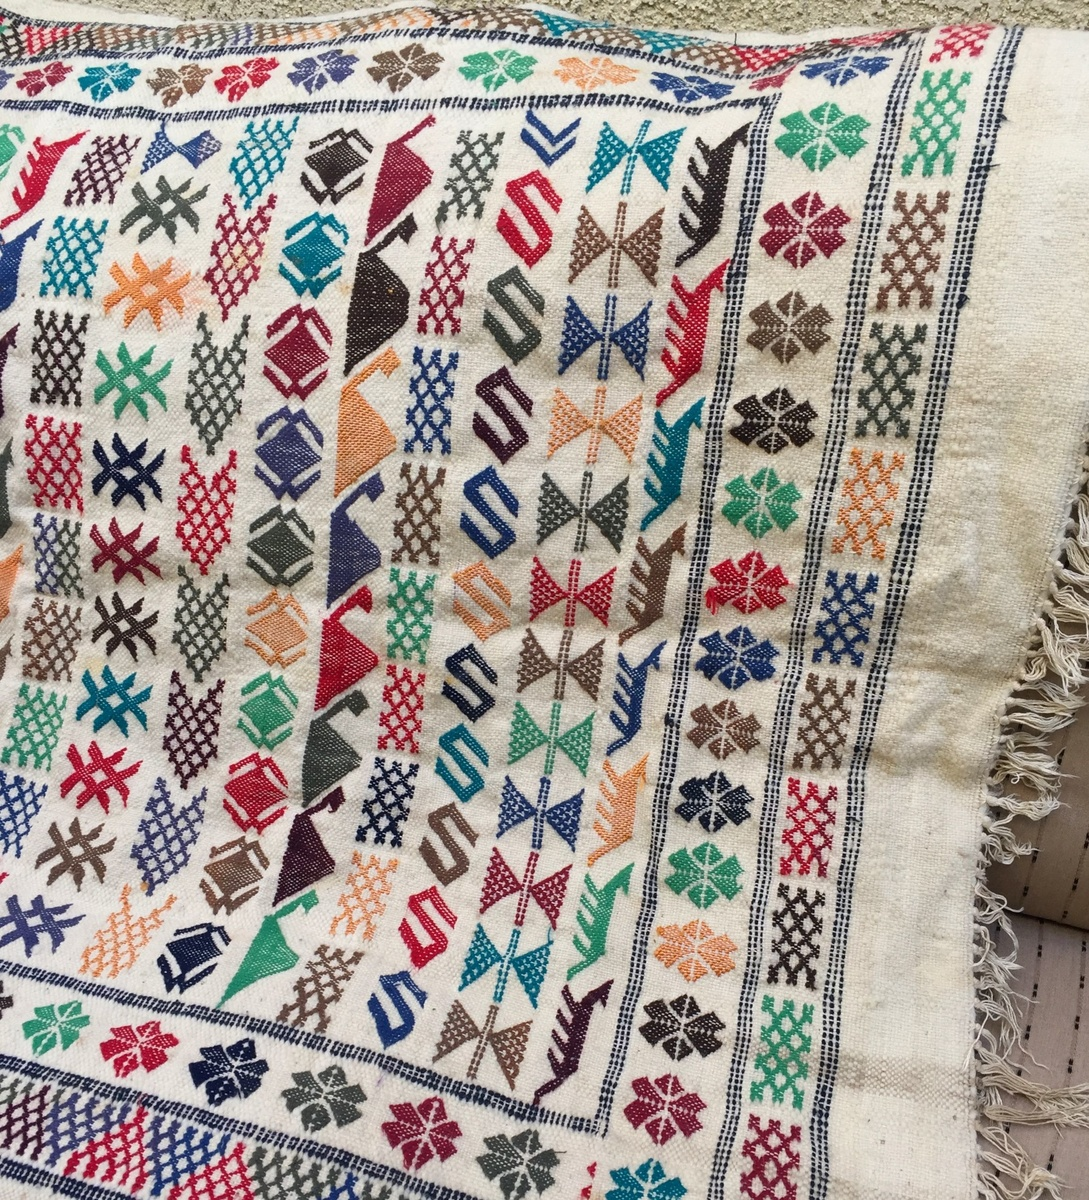 Hang Blanket On Wall hand woven, hand embroidered turkish symbols blanket, wall hanging